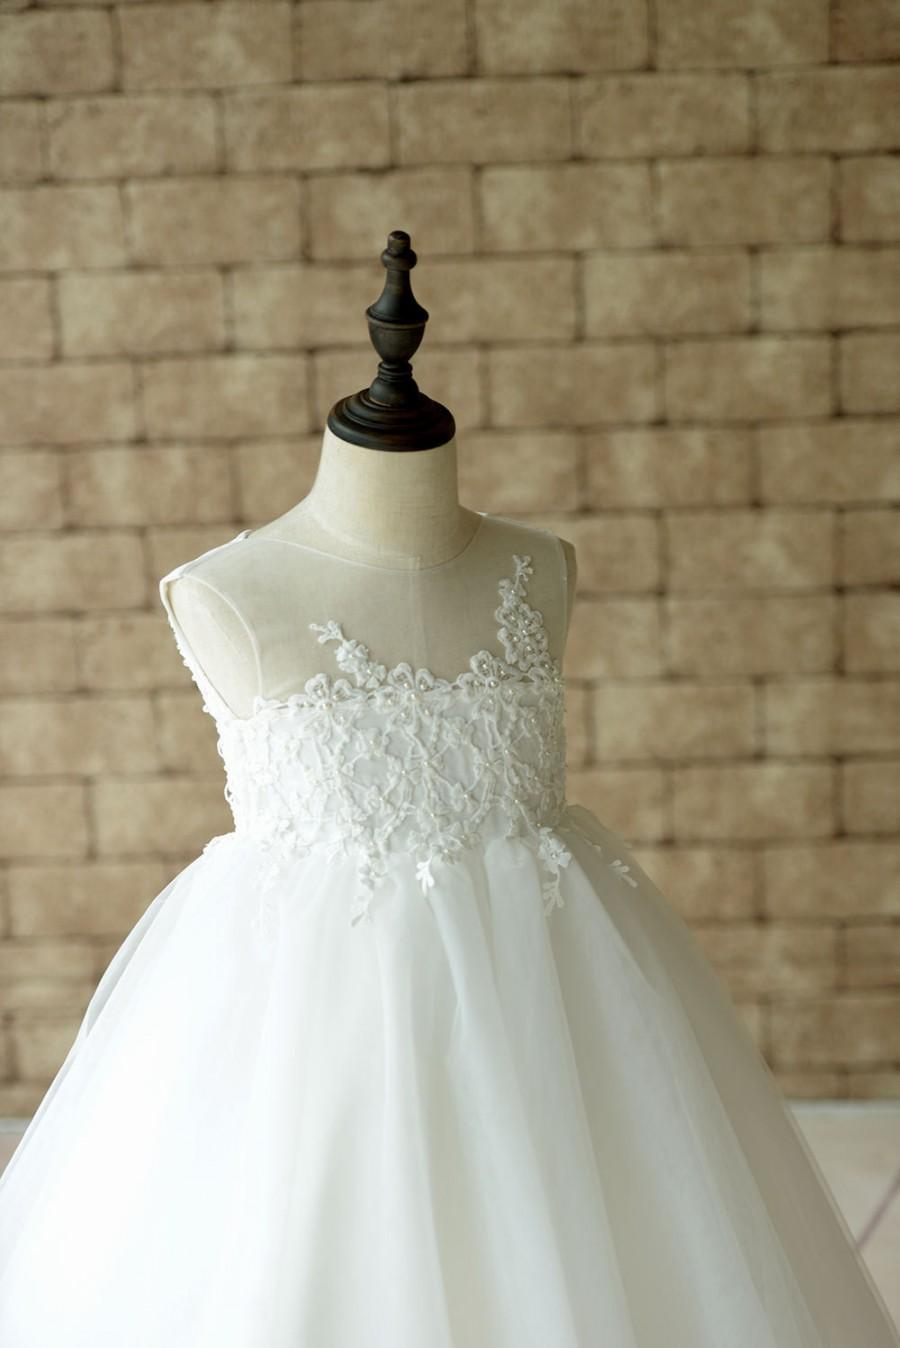 Wedding - Sheer Lace Strapless Neckline Flower Girl Dress Ball Gown with Pearls